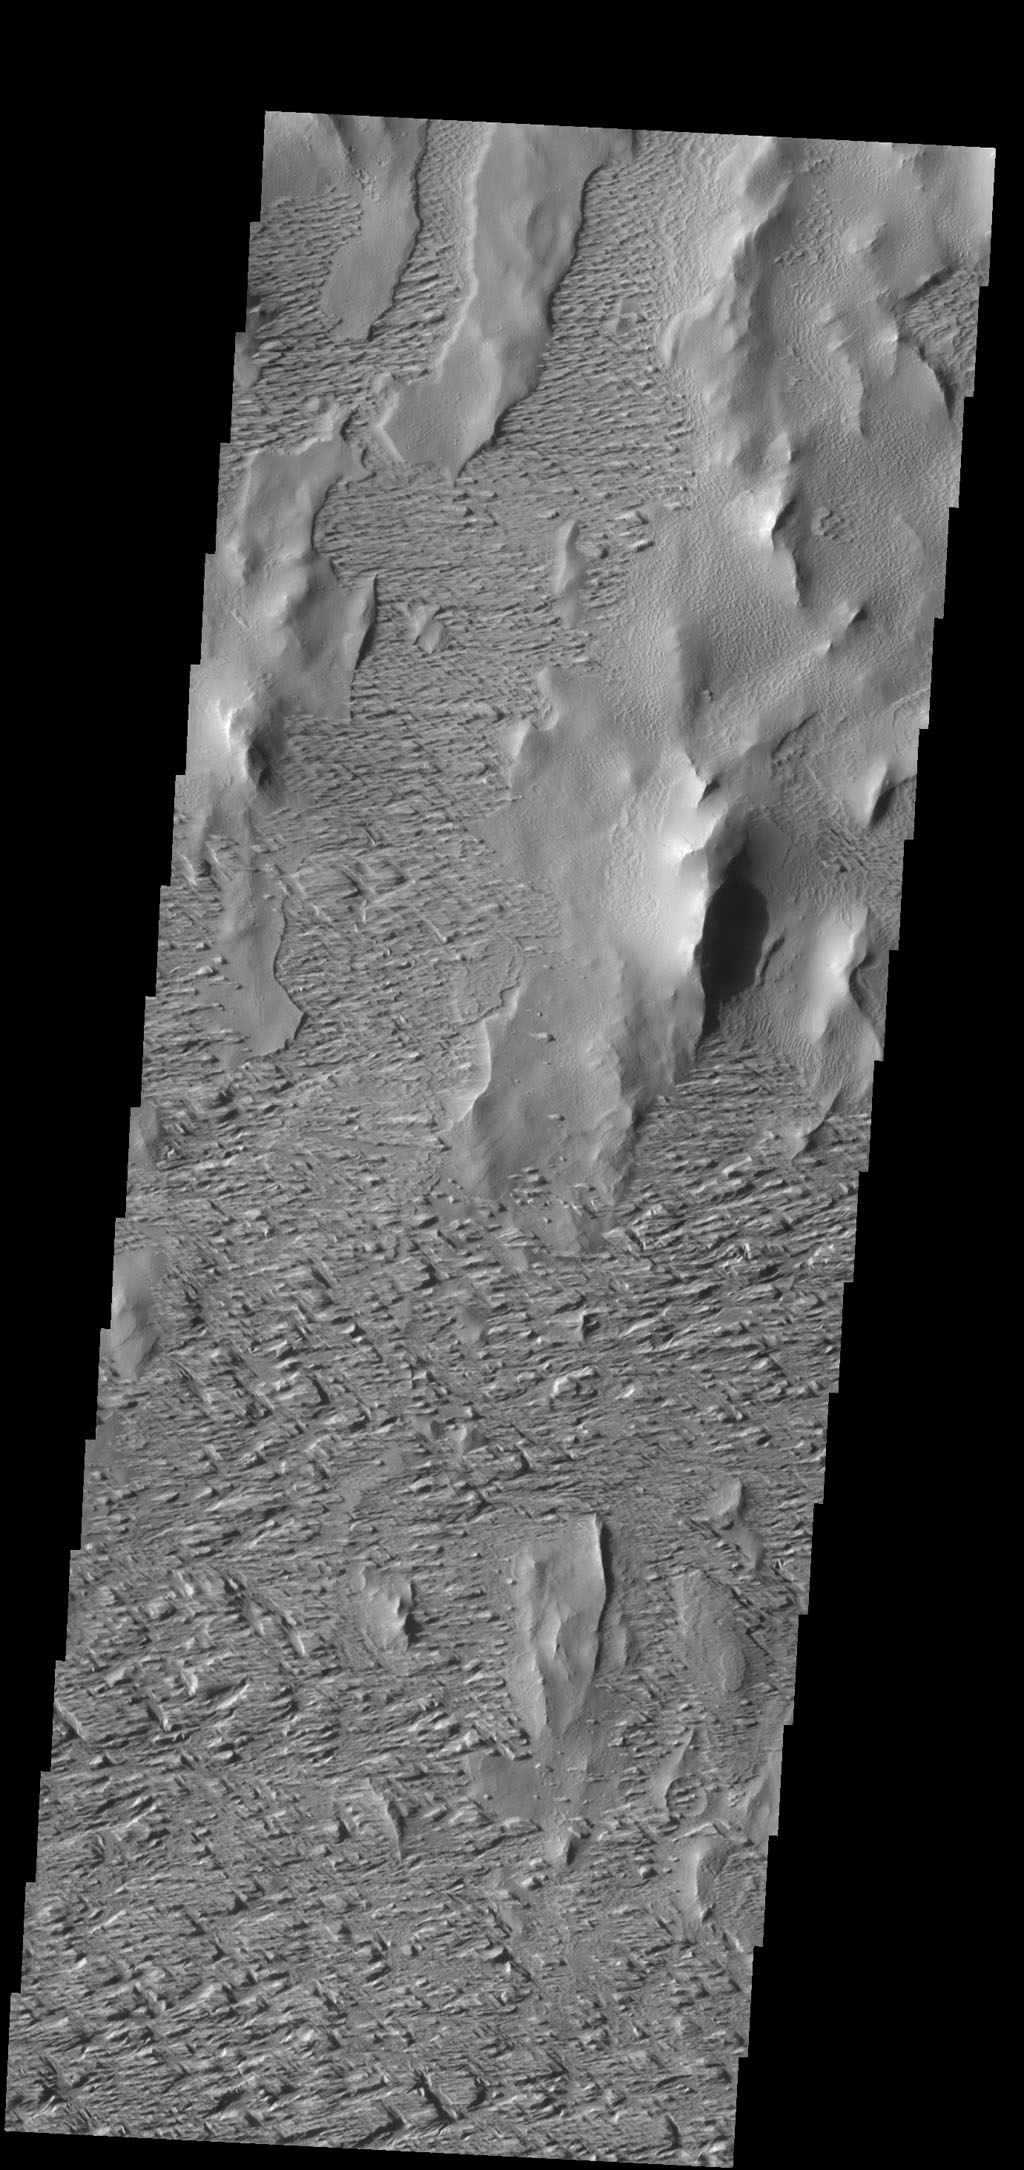 Winds have scoured this region south of Olympus Mons as seen in this image from NASA's 2001 Mars Odyssey spacecraft.